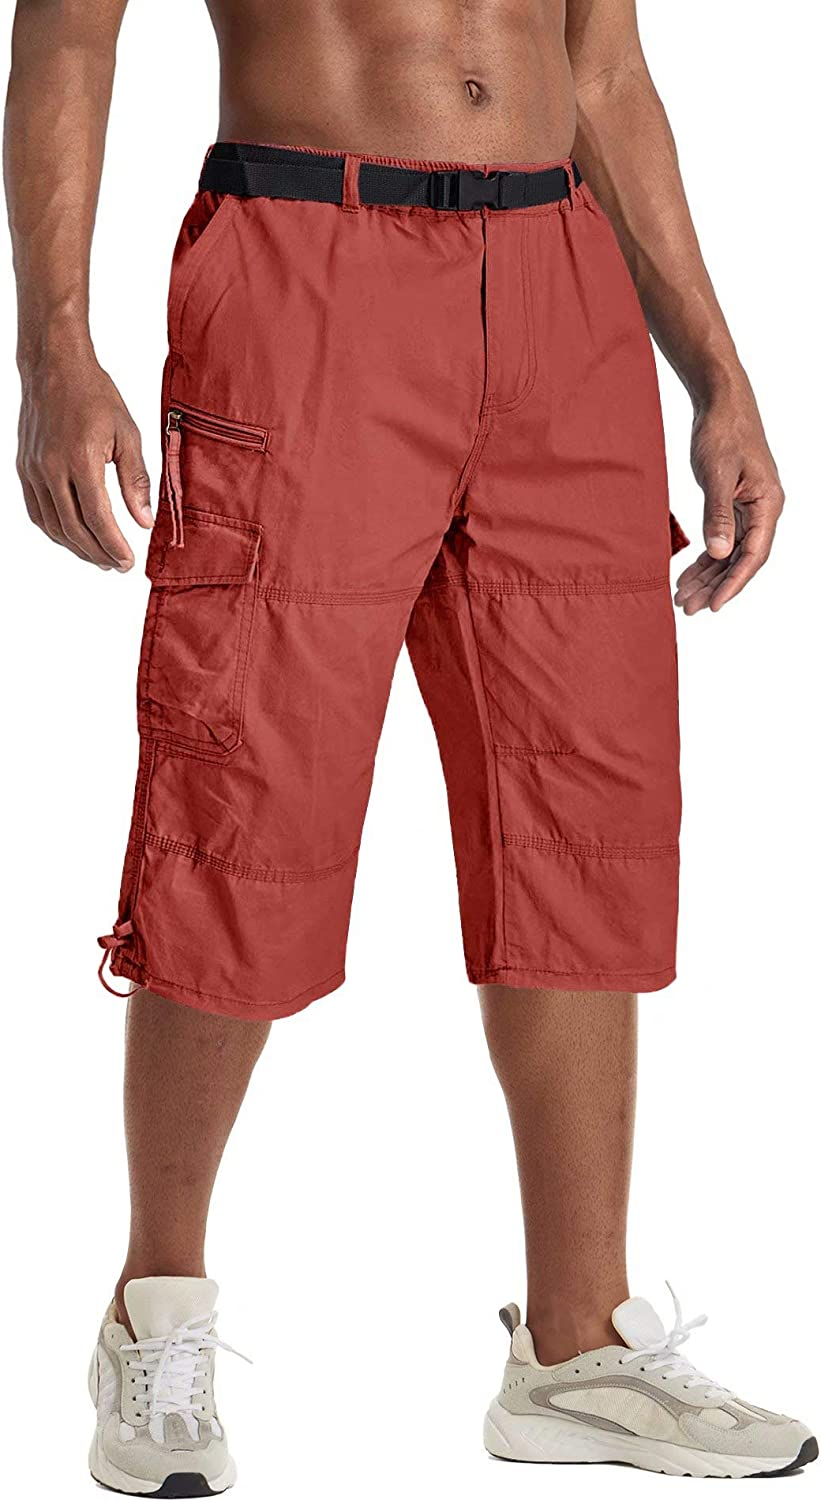 BIYLACLESEN Men's Cargo Shorts Twill Elastic Relaxed Fit Below Knee 3/4 Capri Long Shorts with 7 Pockets